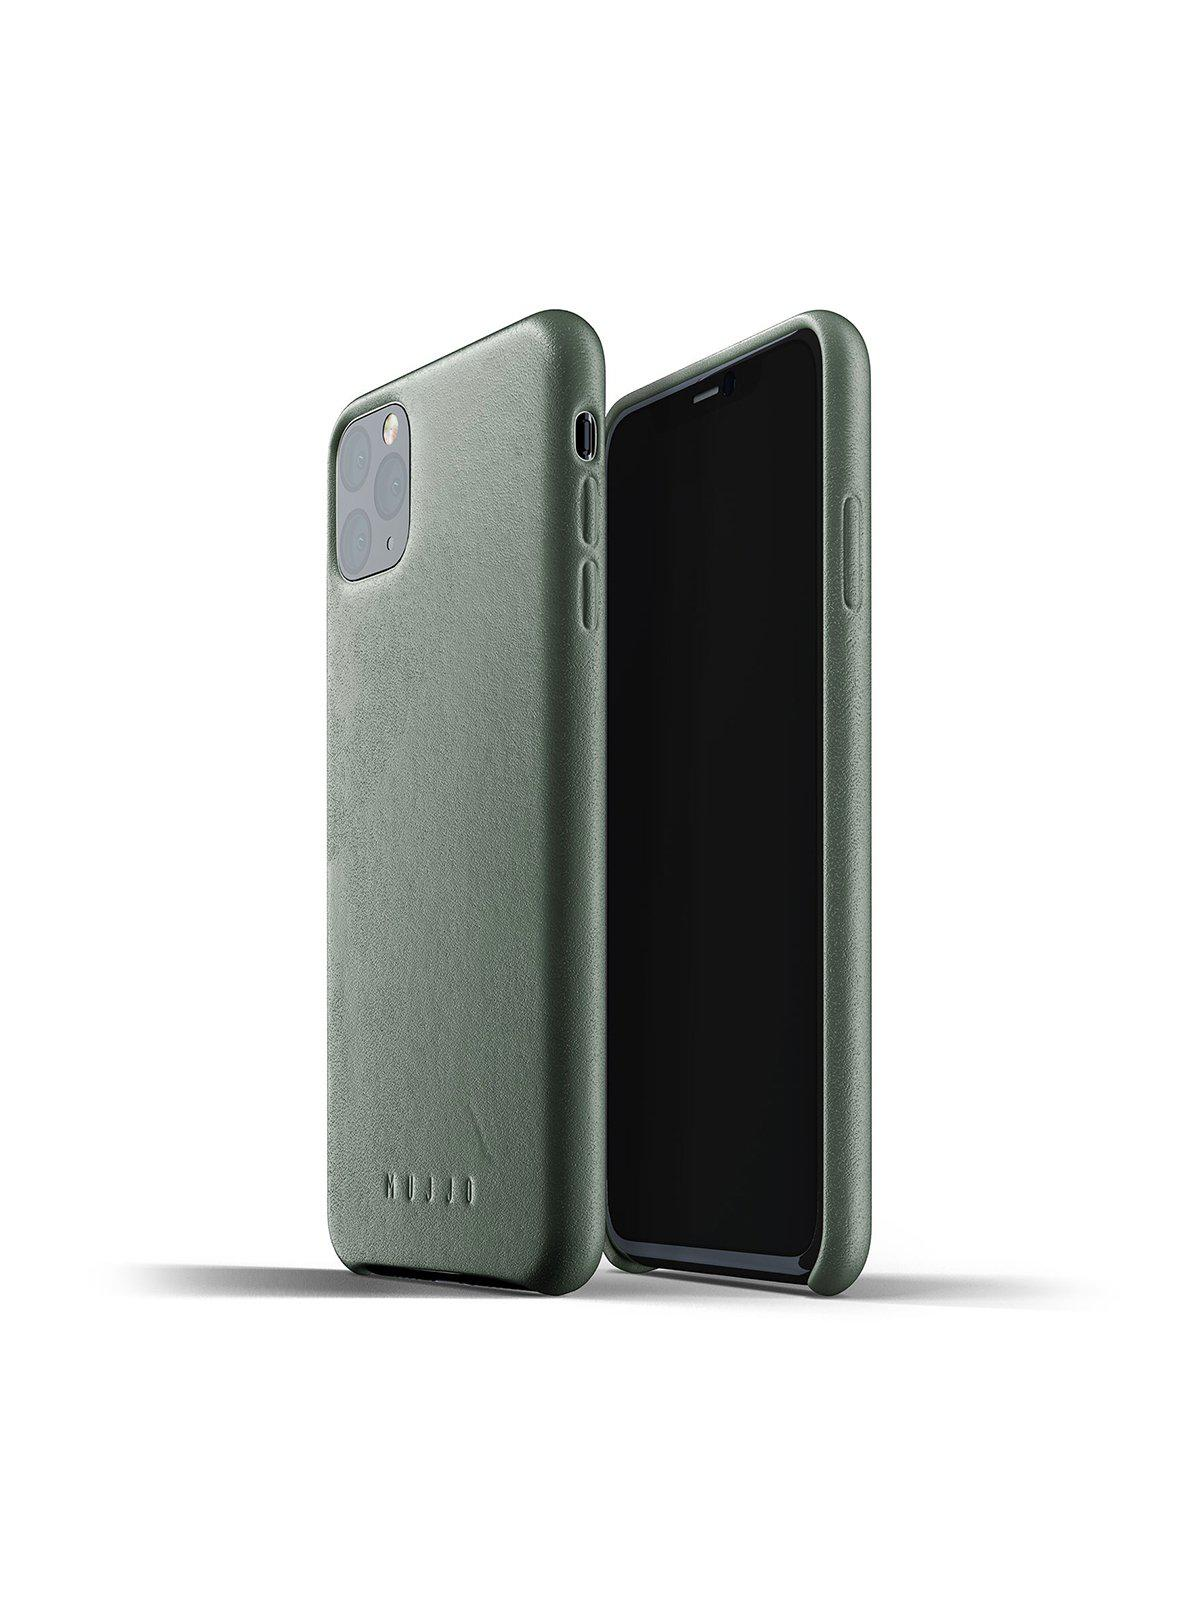 Mujjo Full Leather Case for iPhone 11 Pro Max Slate Green - MORE by Morello Indonesia